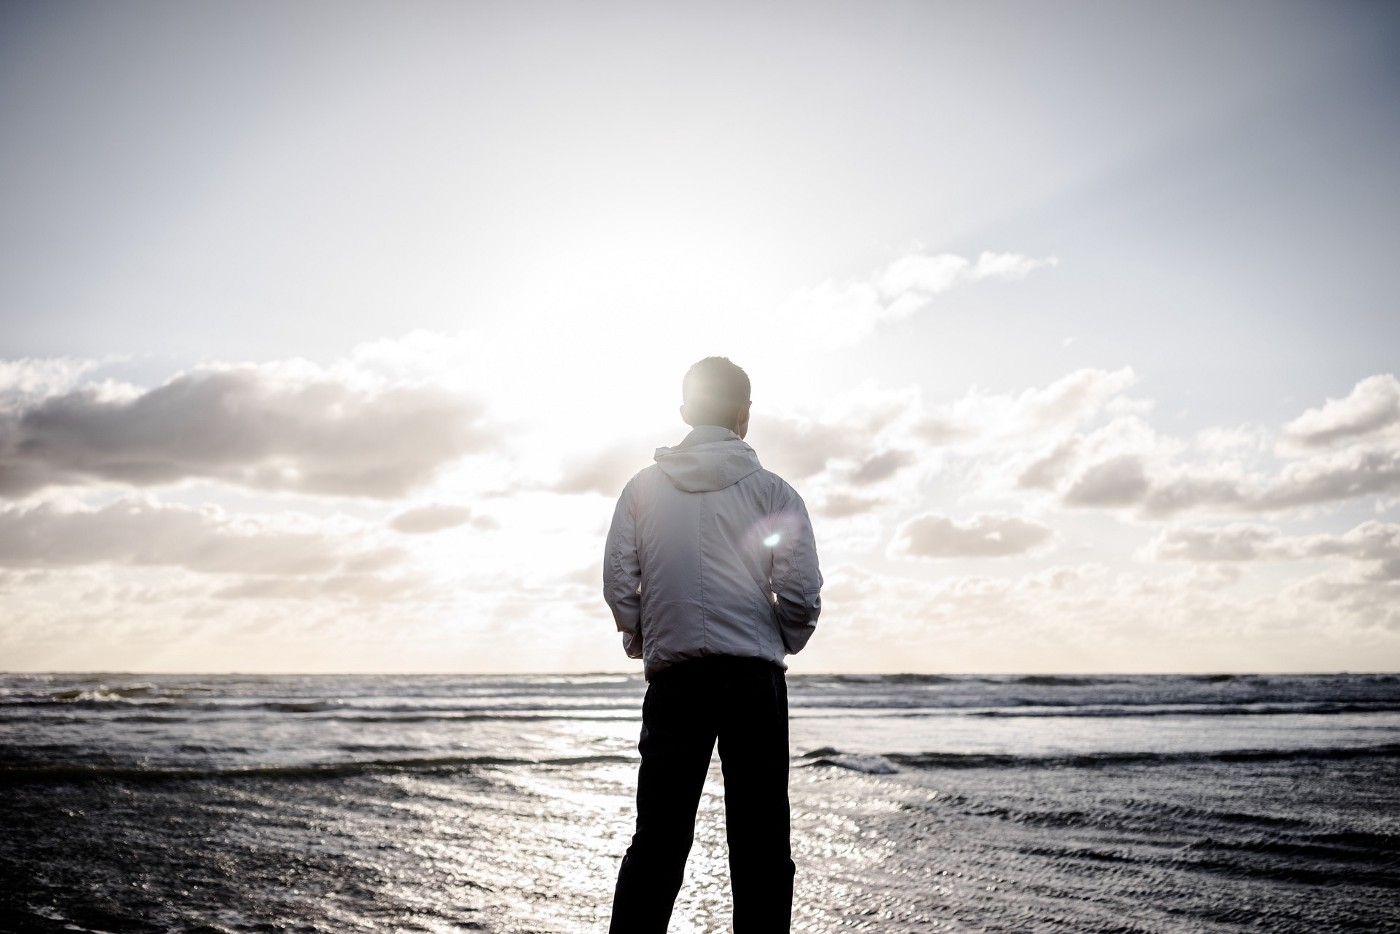 Person staring out at the ocean